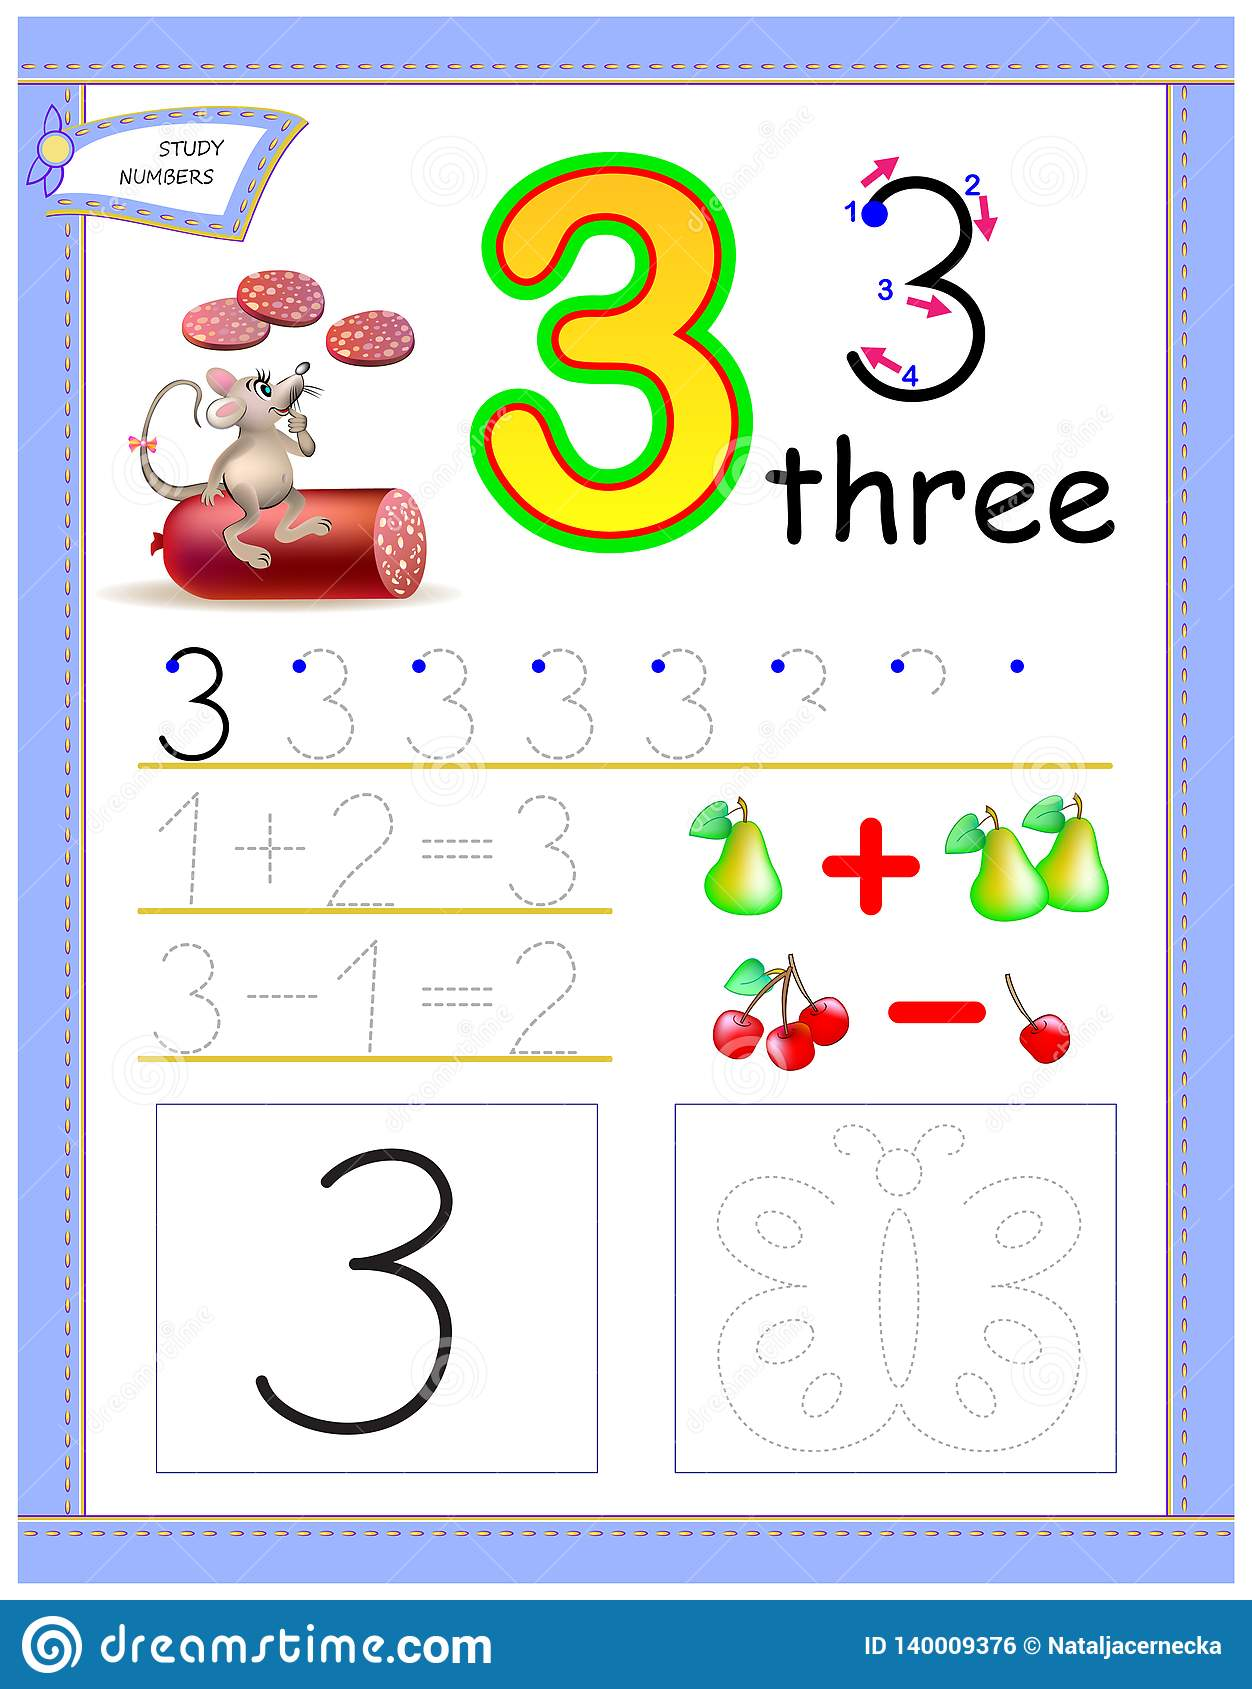 Educational Page For Kids With Number 3 Draw The Contour